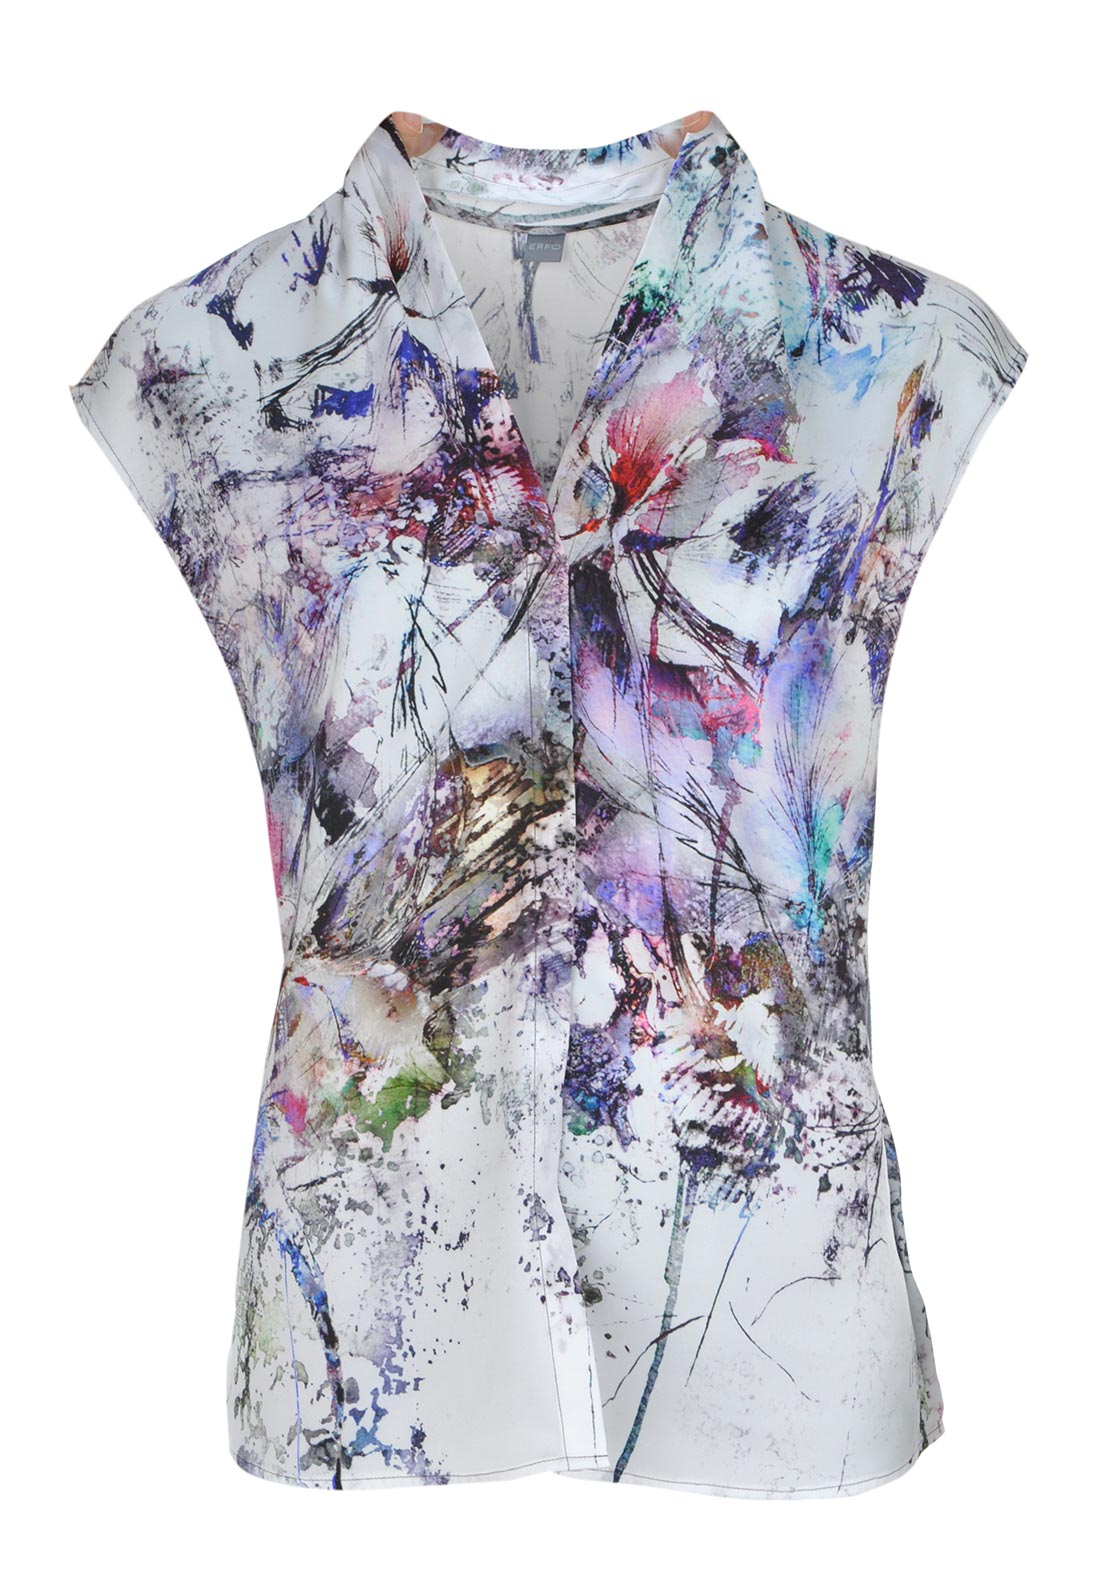 ERFO Digital Print Sleeveless V-Neck Blouse, Multi-Coloured